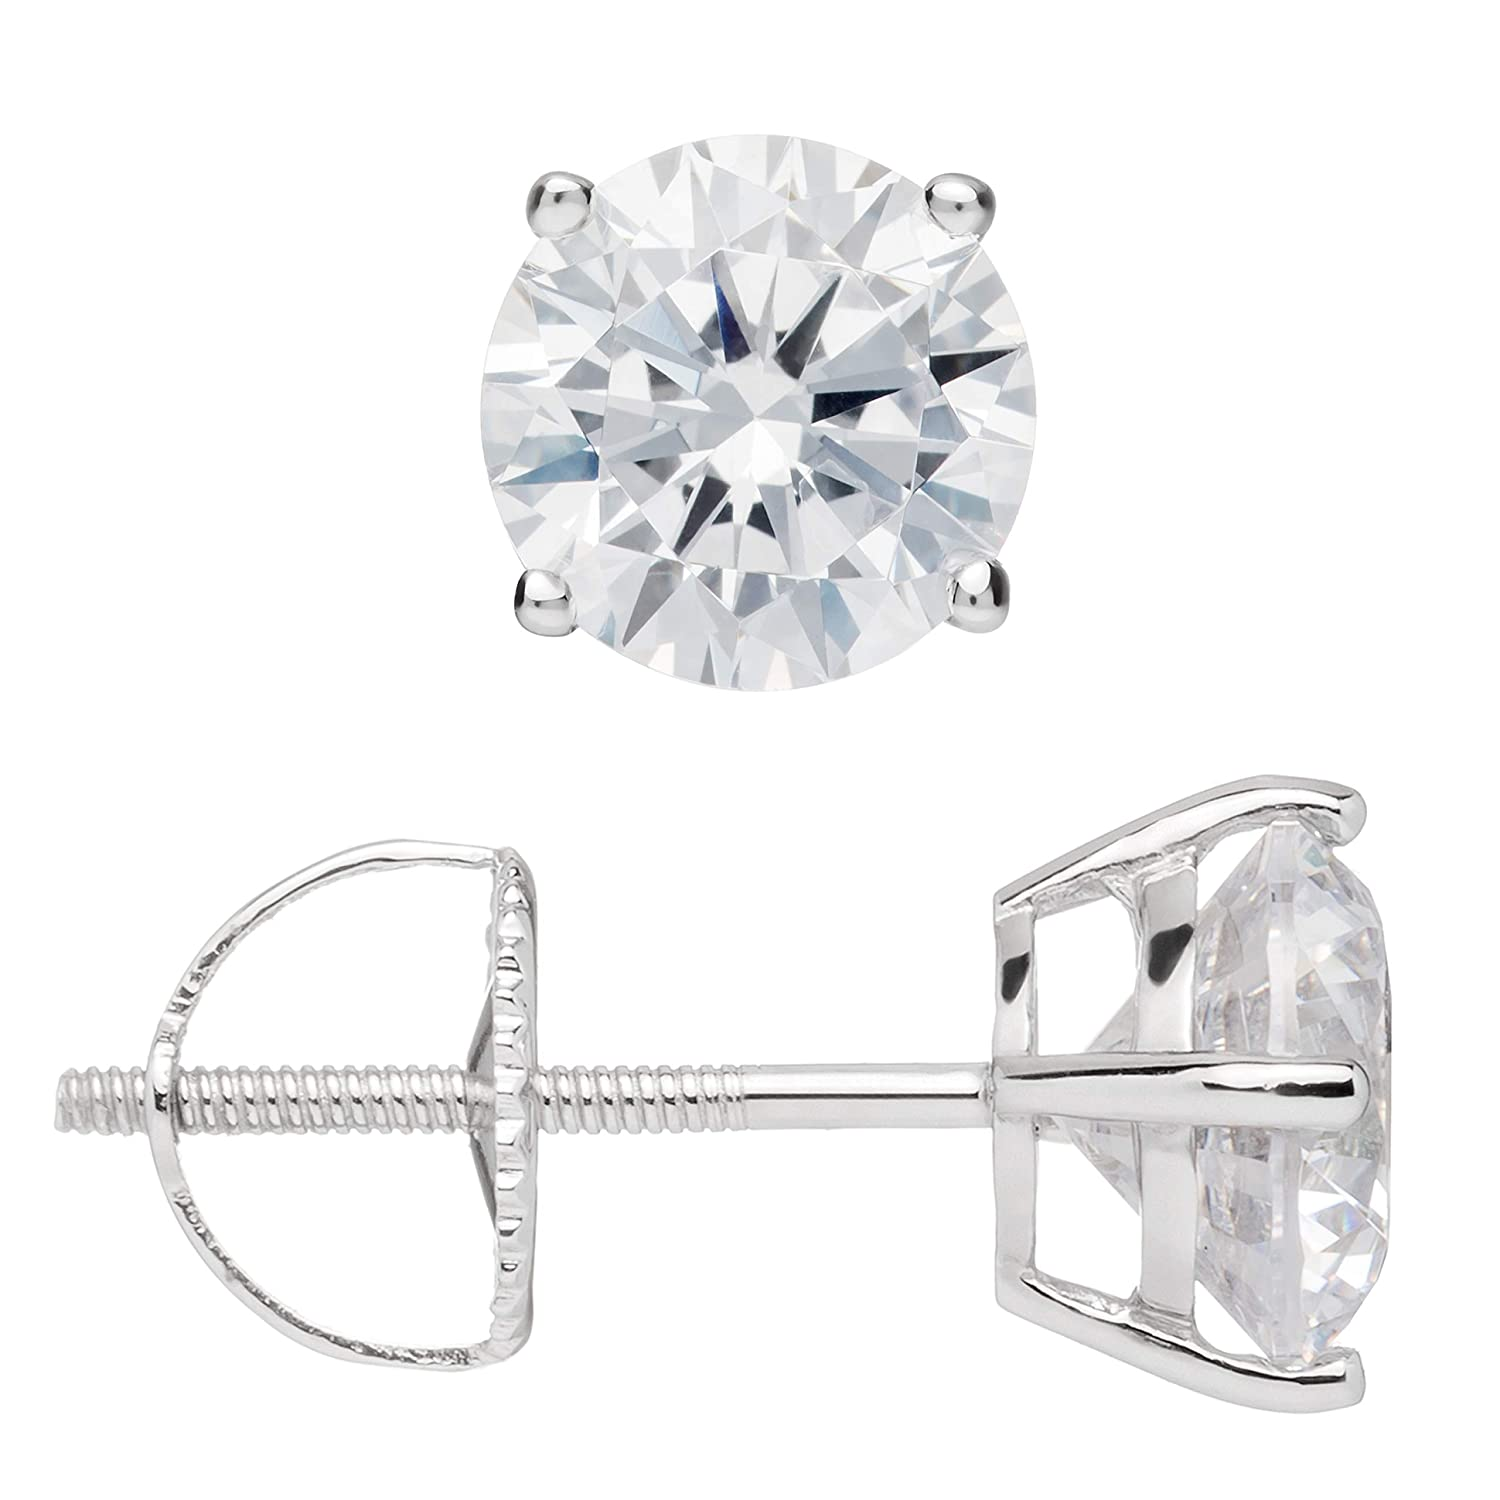 14K Solid White Gold Round Cut Cubic Zirconia Stud Earrings | .50 to 4.0 CTW | Screw Back Posts | With Gift Box Everyday Elegance WRABC E022/9